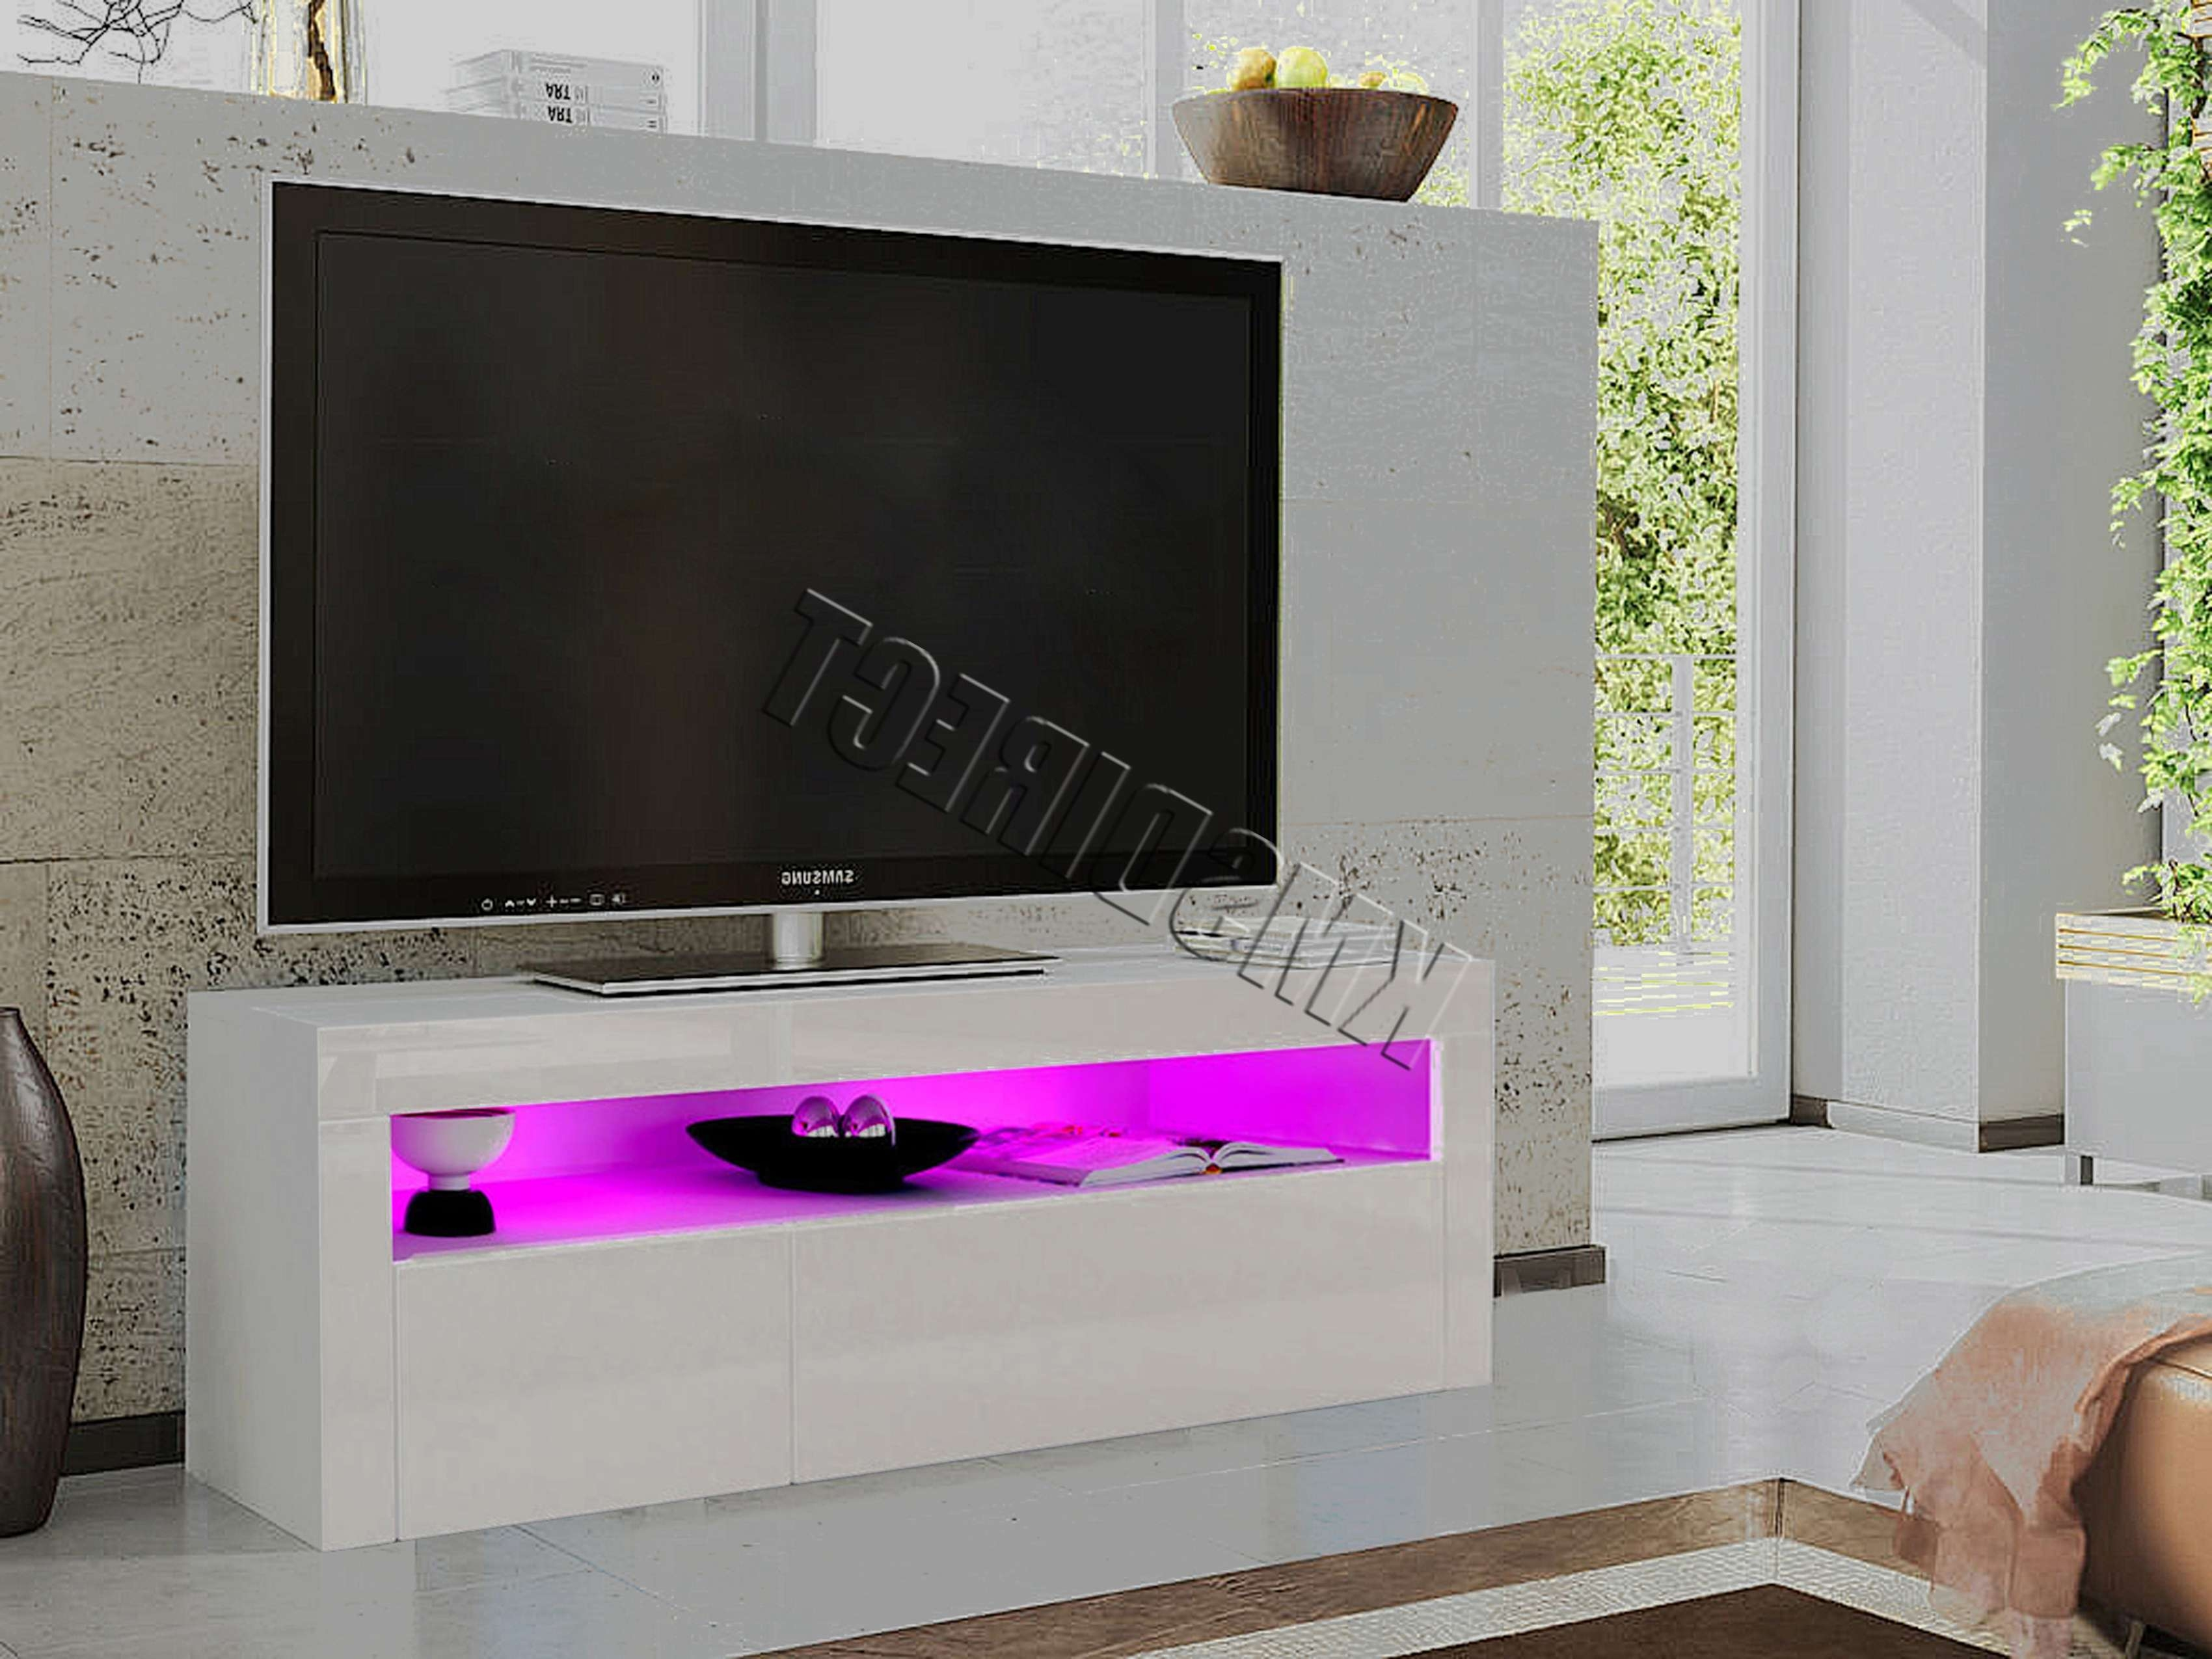 Foxhunter Modern High Gloss Matt Tv Cabinet Unit Stand White Rgb Pertaining To High Gloss Tv Cabinets (View 4 of 20)